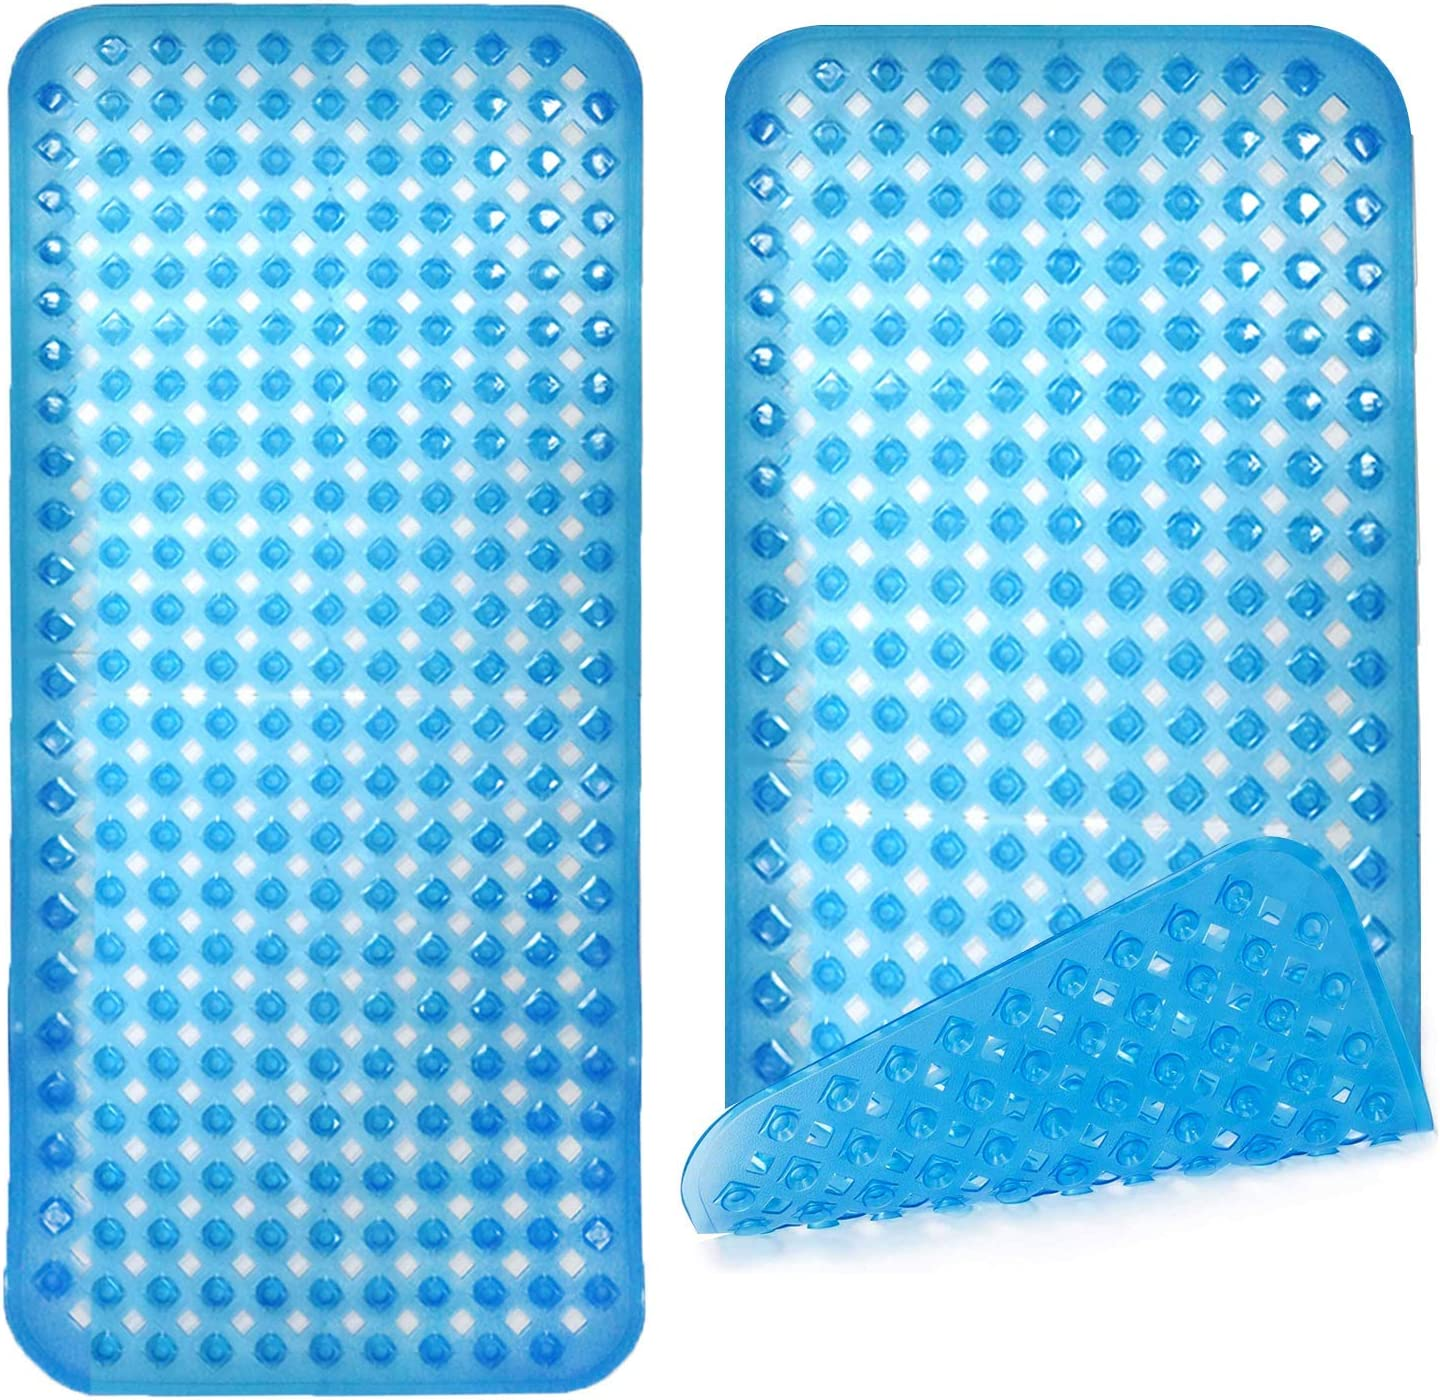 Zuci 2 Pack Bathtub Mat Non Slip Suction with Memphis Our shop most popular Mall Cups Floor 200 Wet